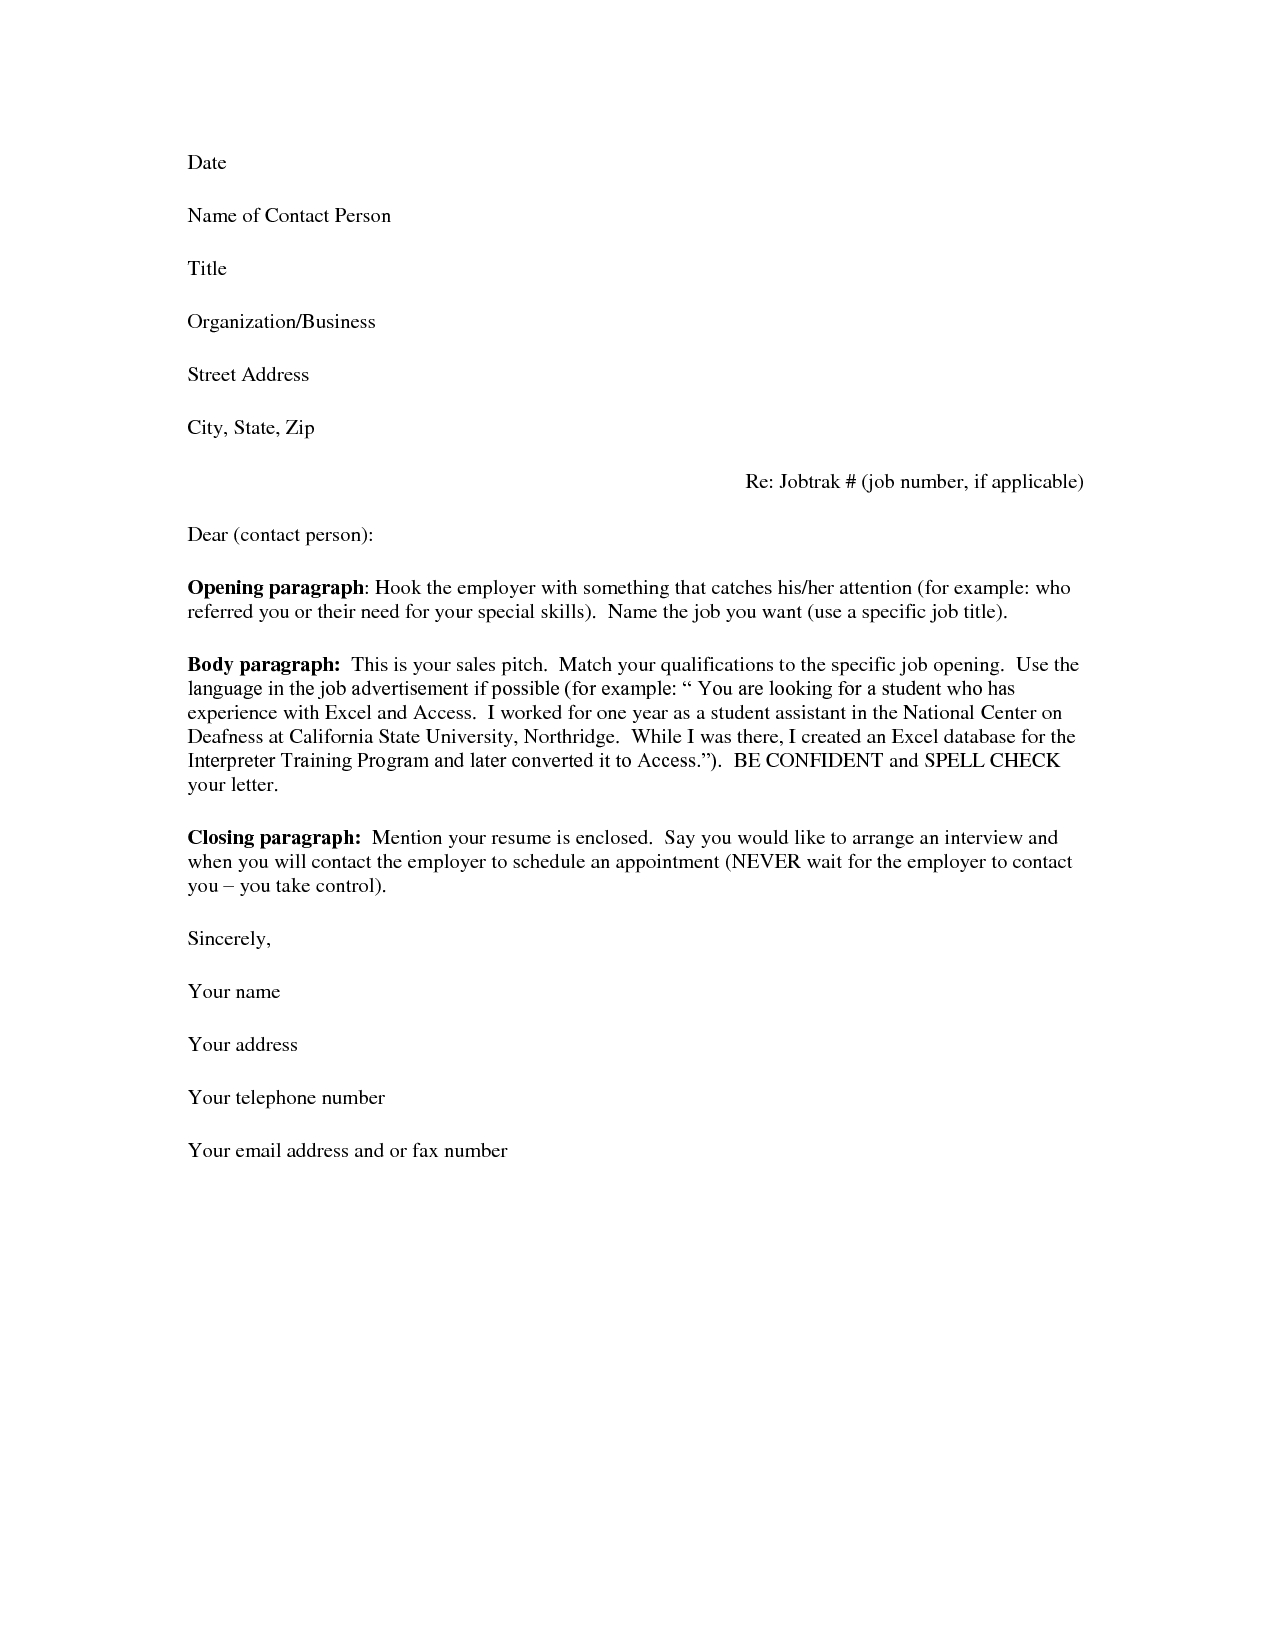 A Resume Cover Letter Jianbochen Com